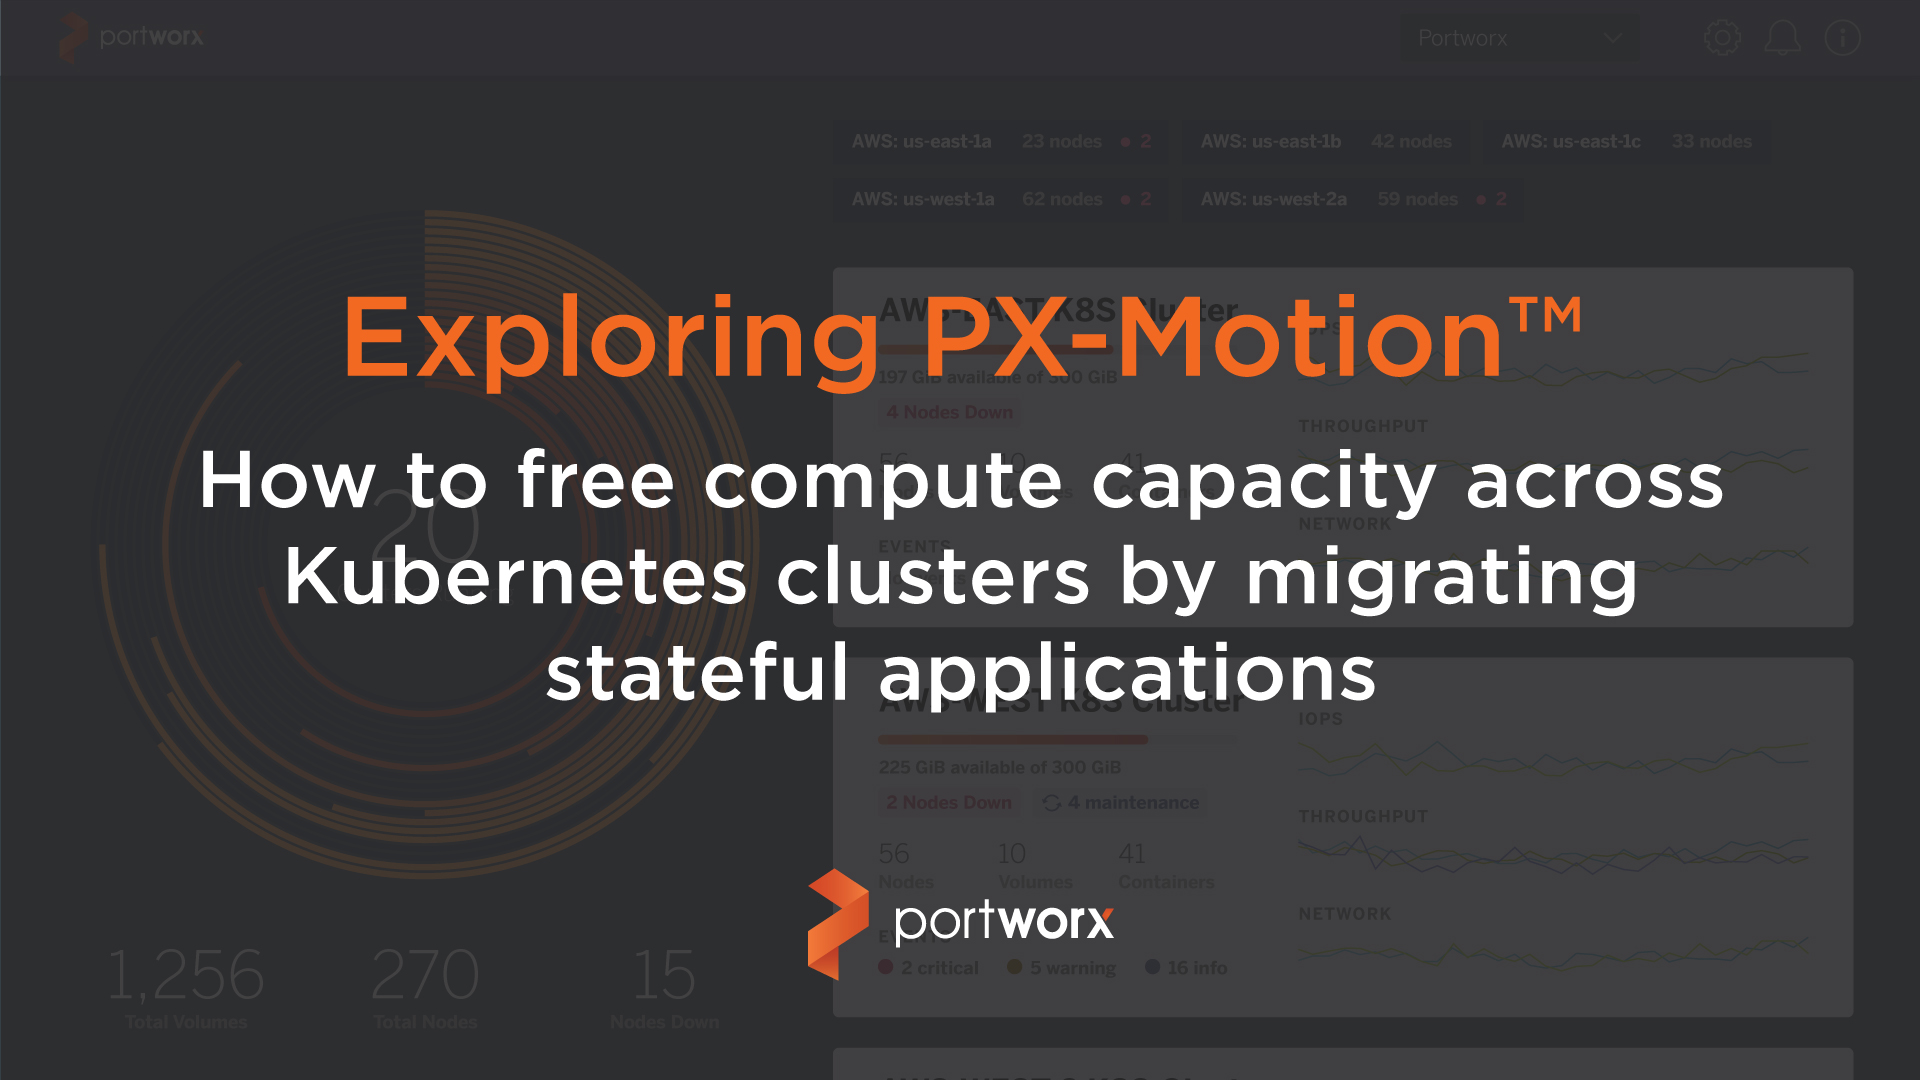 Exploring PX-Motion: How to free compute capacity across Kubernetes